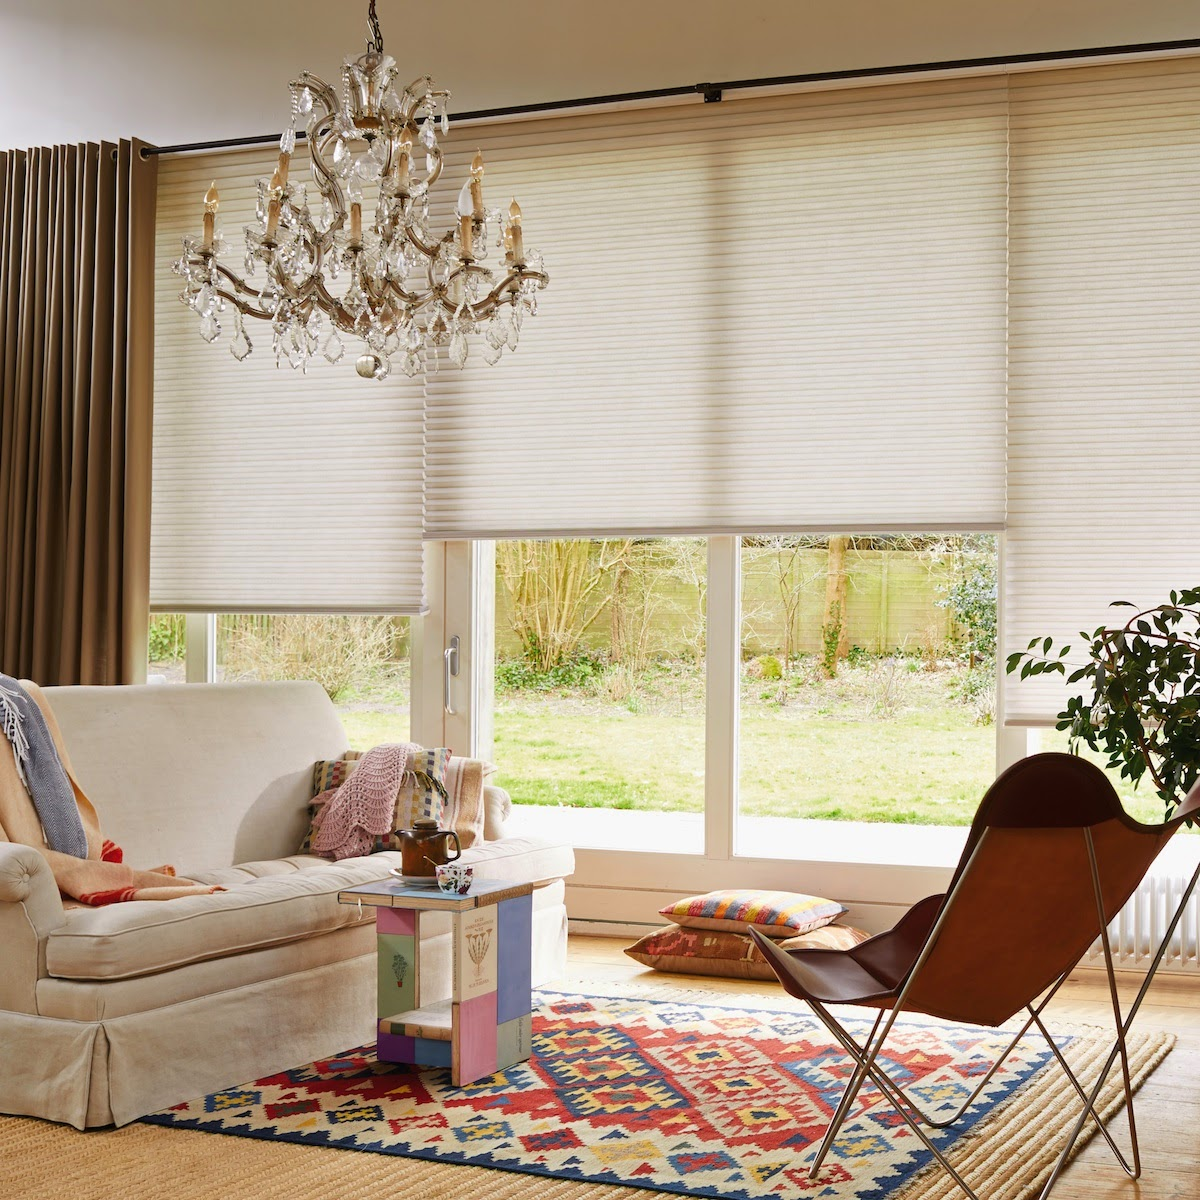 Energy saving ideas for your home all year round the for Advies interieur